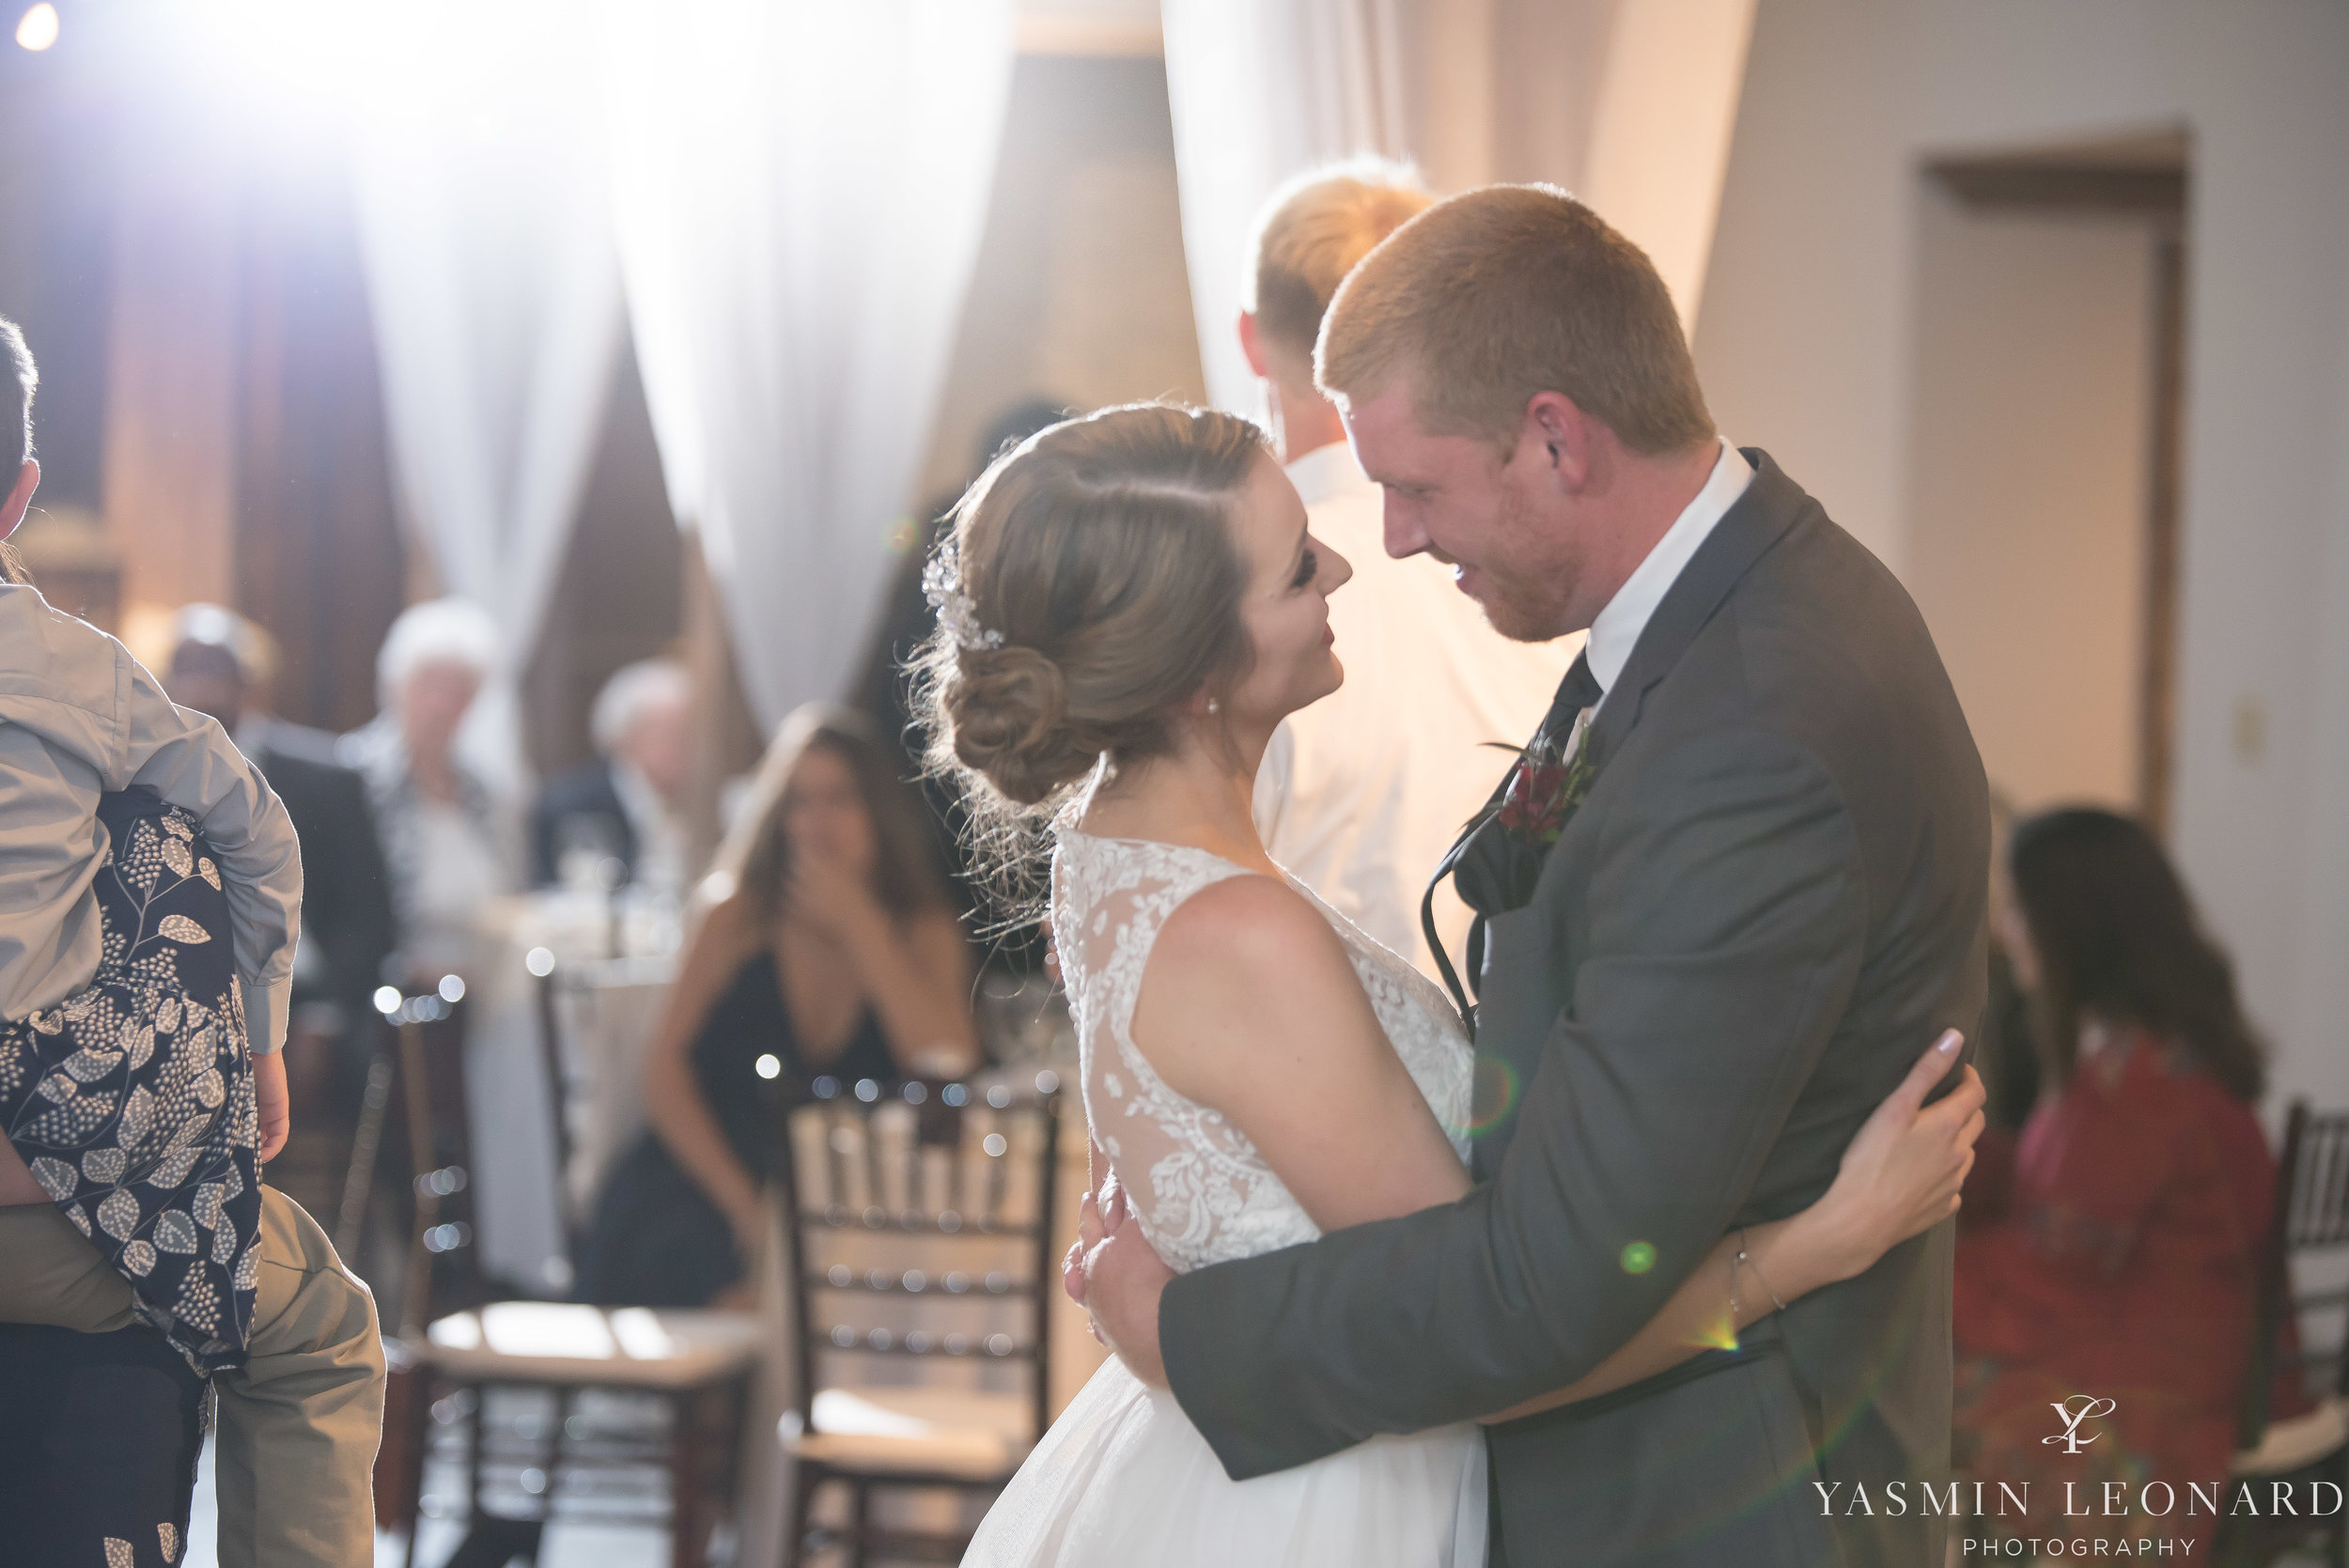 Villa Del Amour - High Point Weddings - NC Weddings - NC Photographer - NC Wedding Photographer - Yasmin Leonard Photography-78.jpg